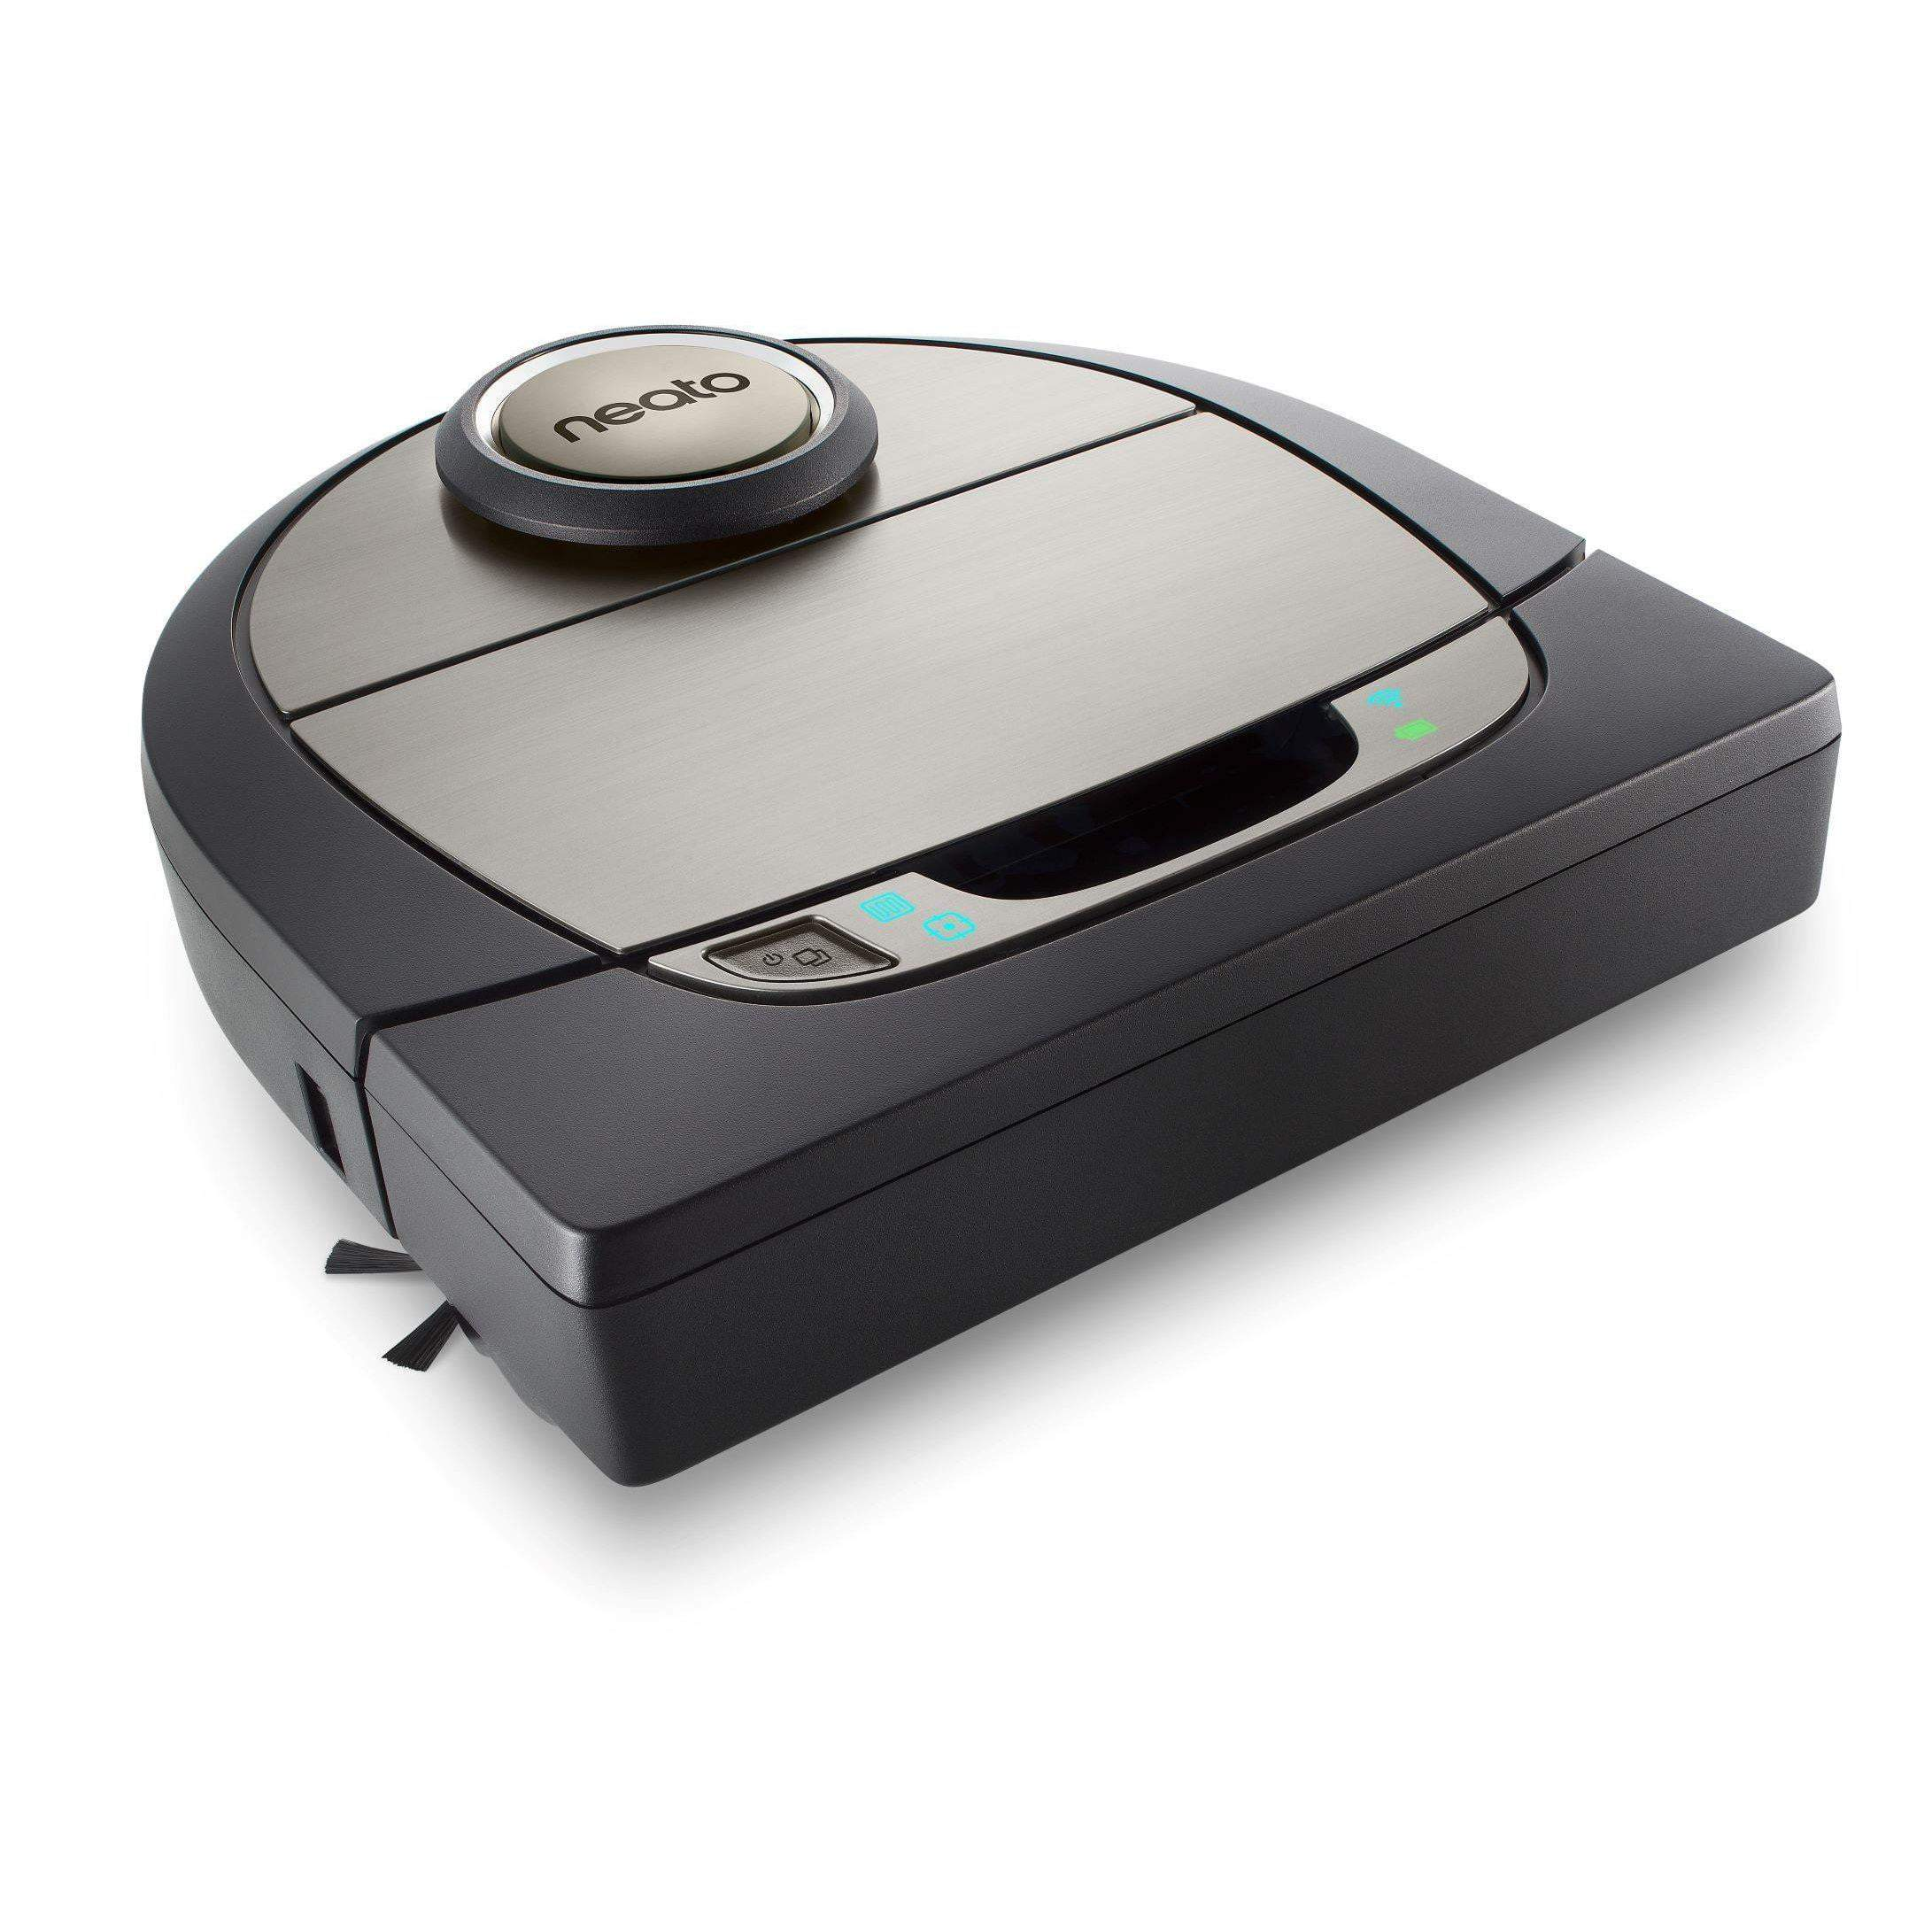 Neato Robotics Botvac Connected Vacuum Cleaner - D7